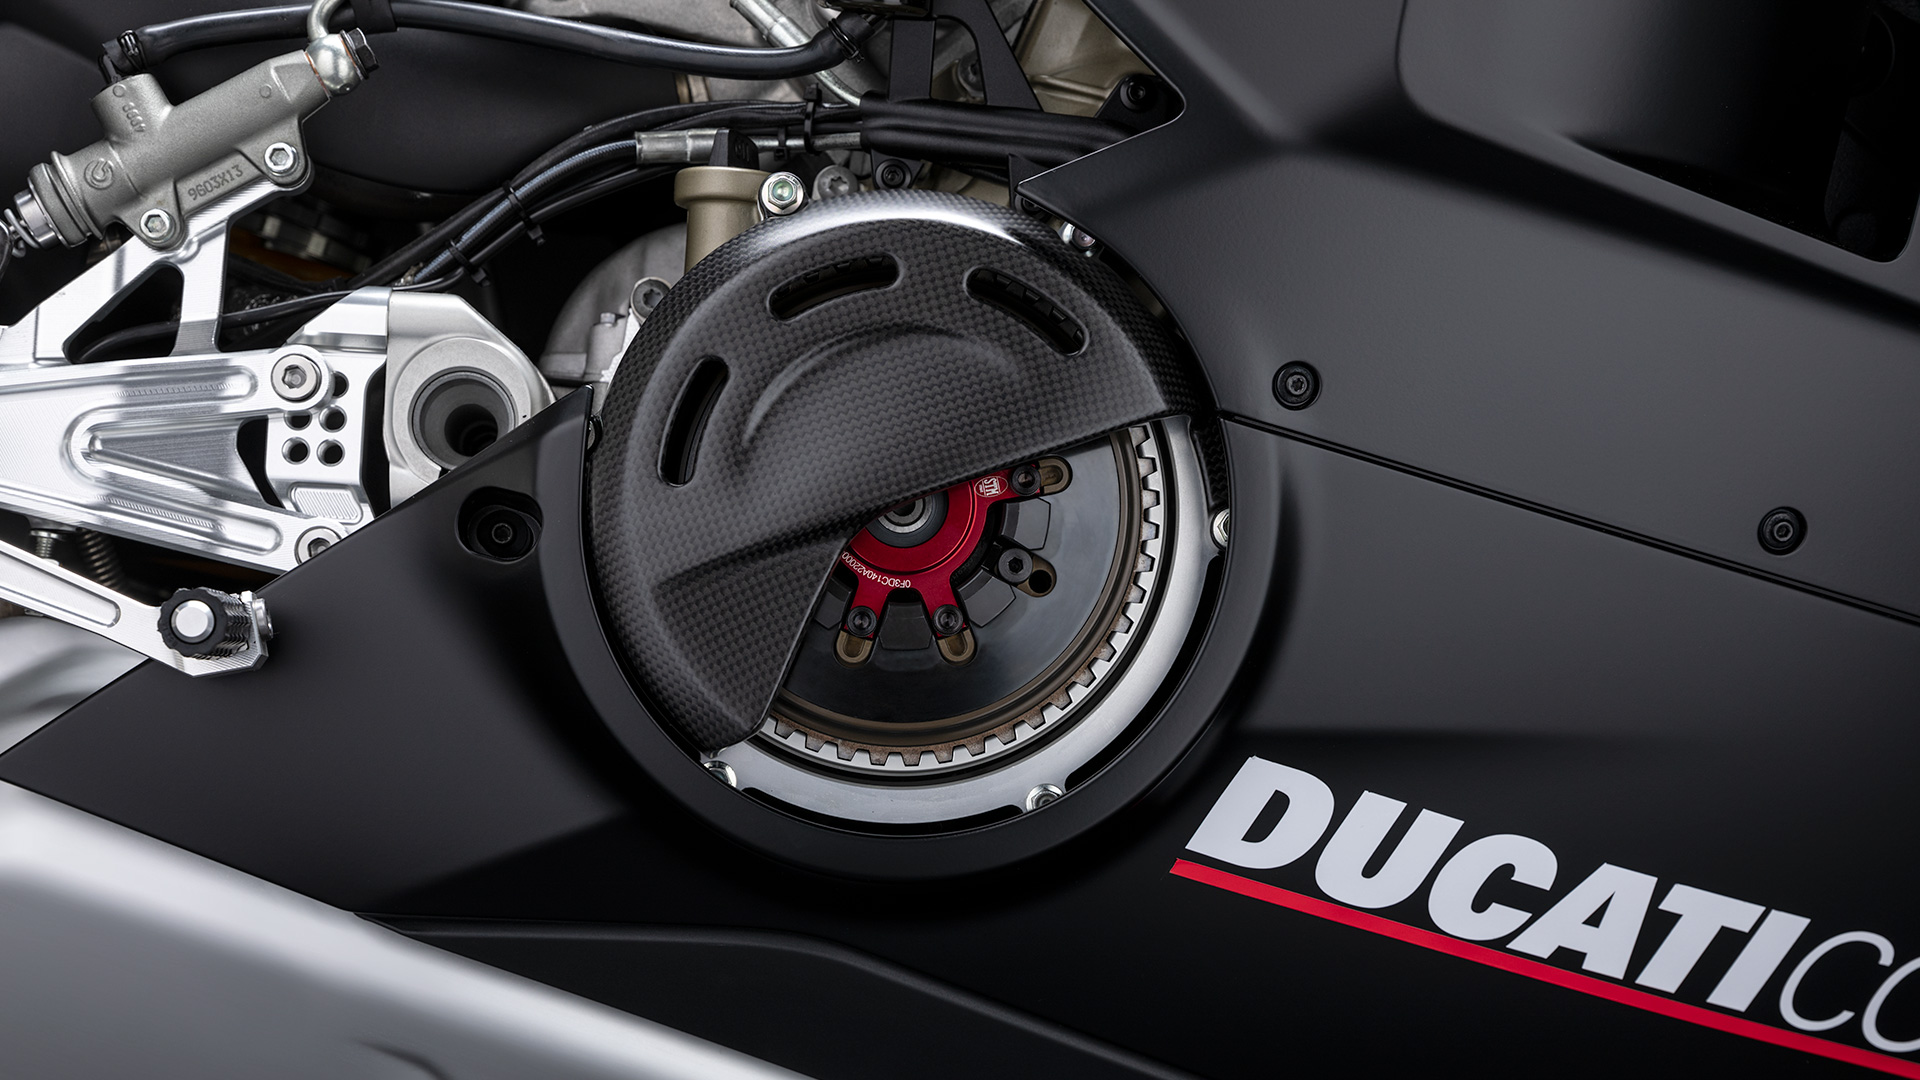 Ducati V4 Panigale - Page 23 Pv4-sp17